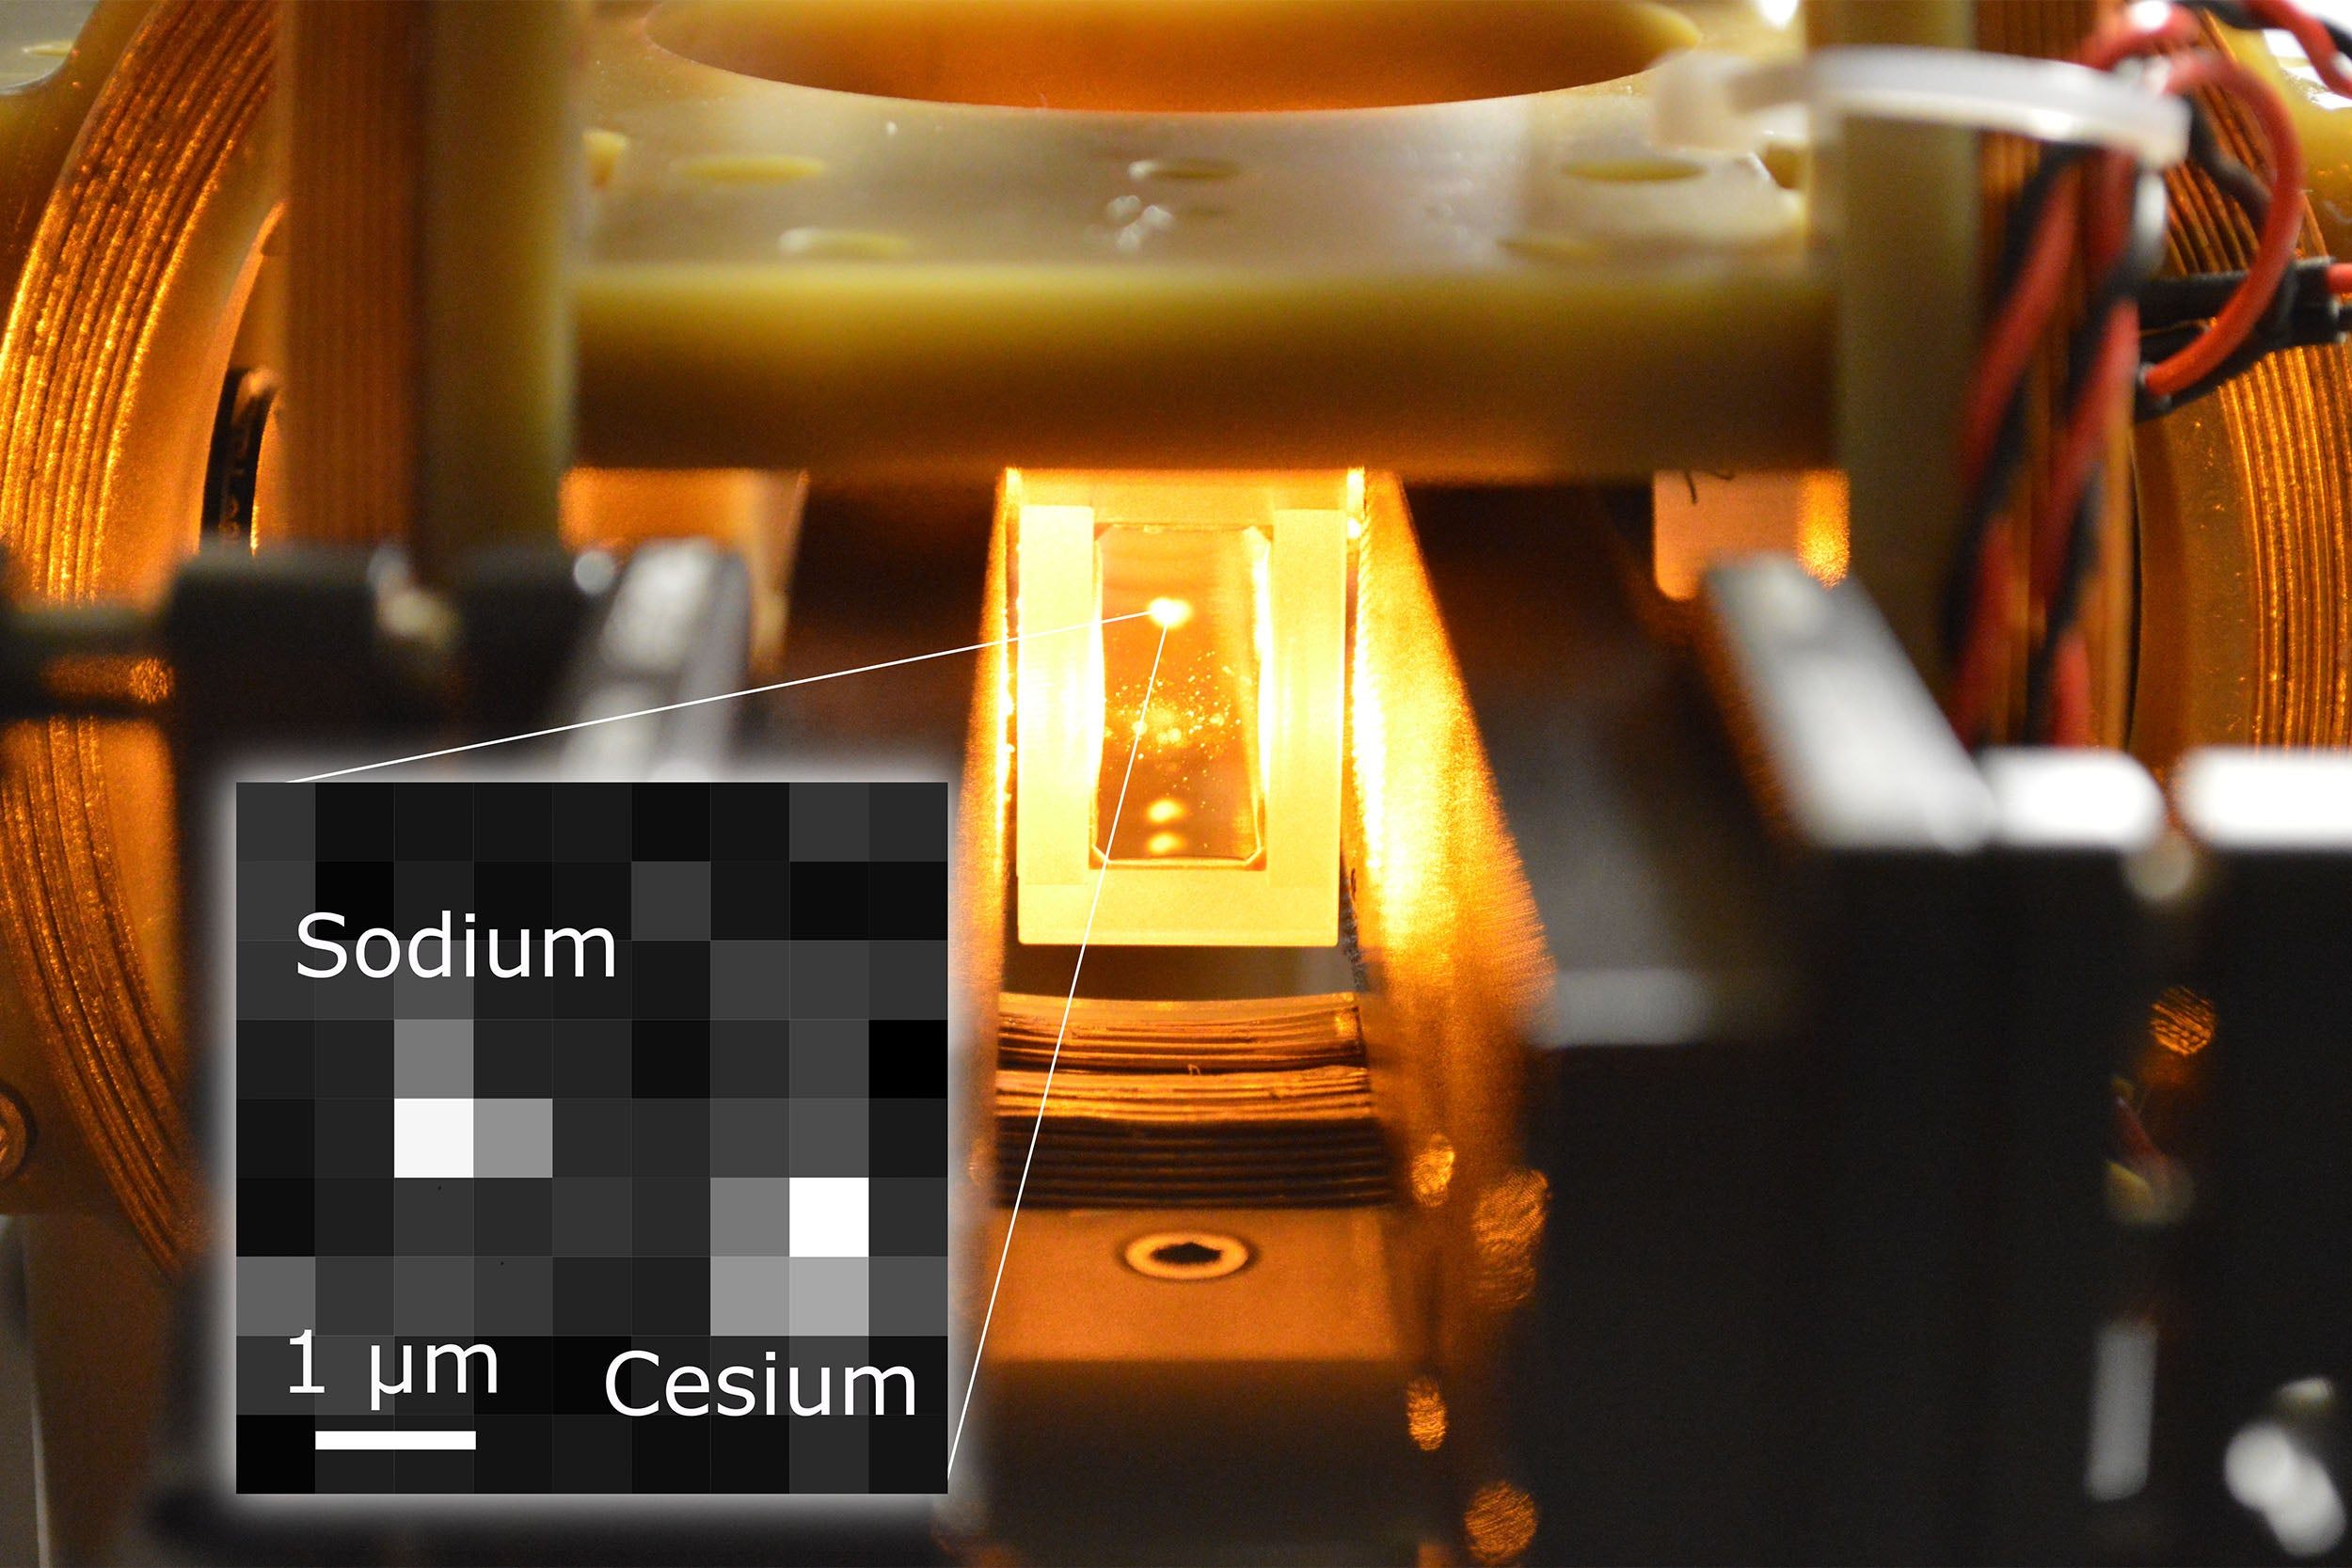 A single molecule has been produced in an optical tweezer by a controlled reaction between a single sodium and single cesium atom. Inside a glass cell vacuum apparatus, a laser-cooled cloud of sodium atoms is suspended, allowing a microscope to view the fluorescence from individual atoms trapped side-by-side.